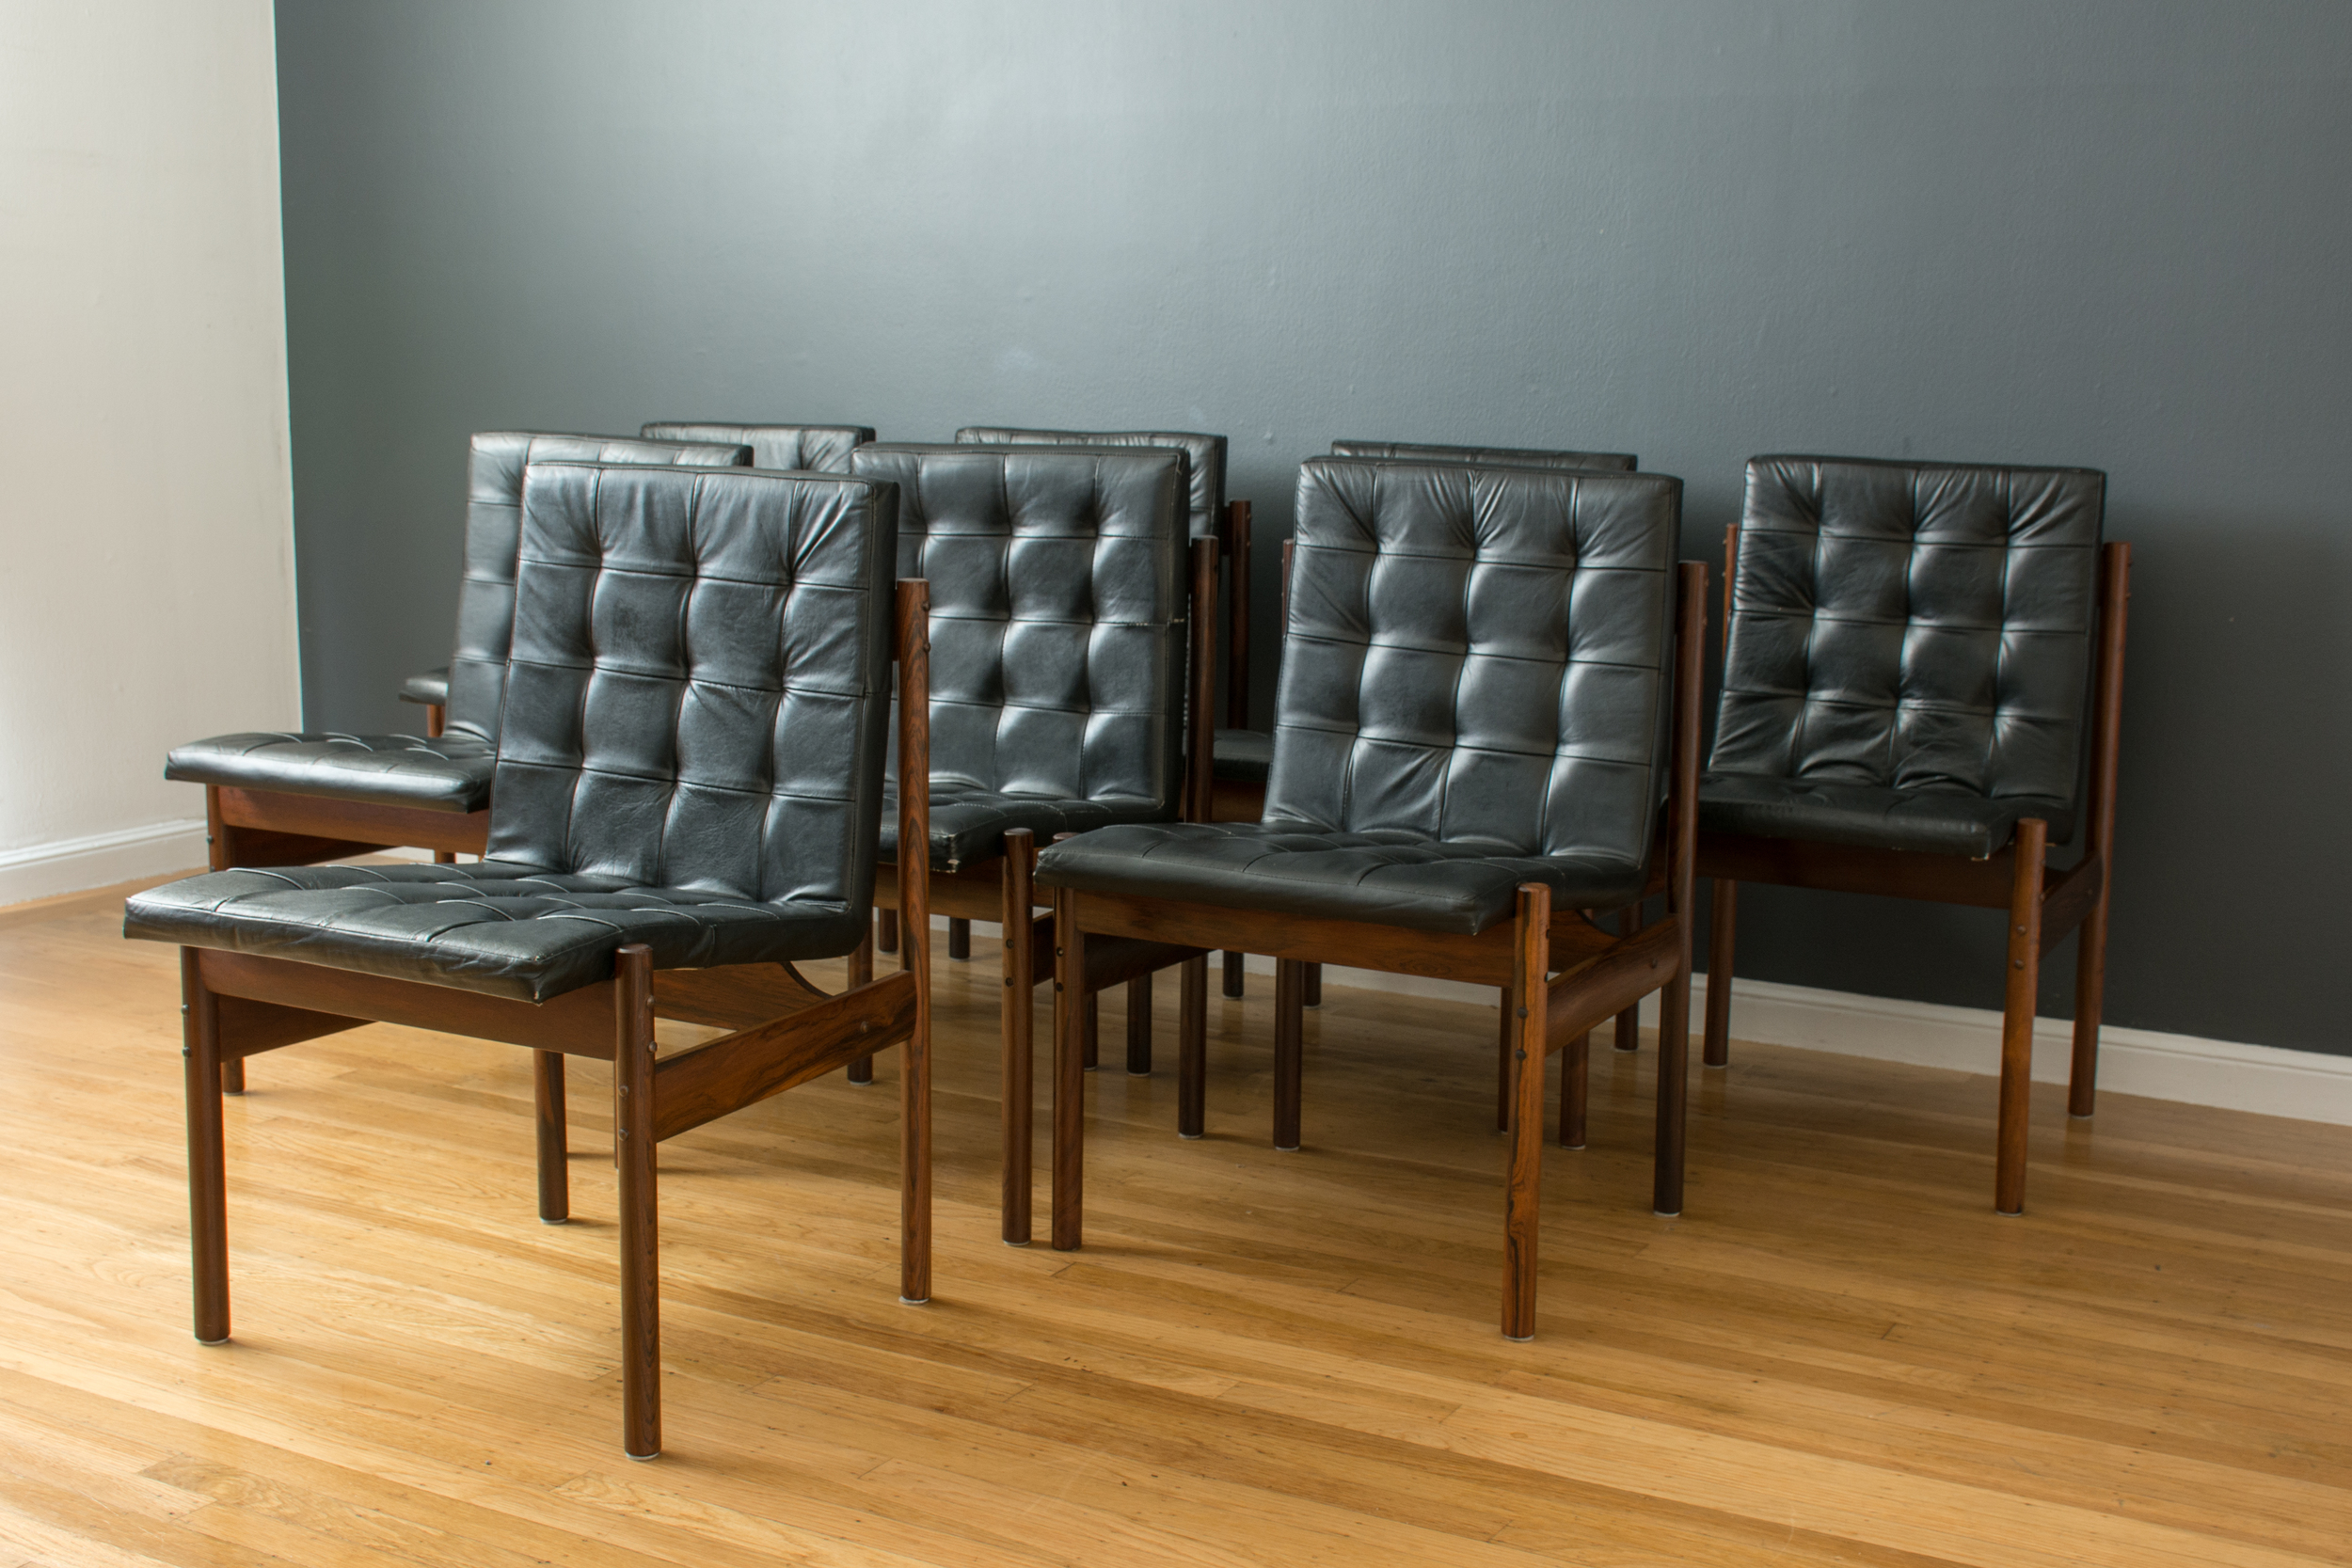 Set of Eight Brazilian Rosewood Dining Chairs by J.D. Moveis e Decoracoes Ltd.